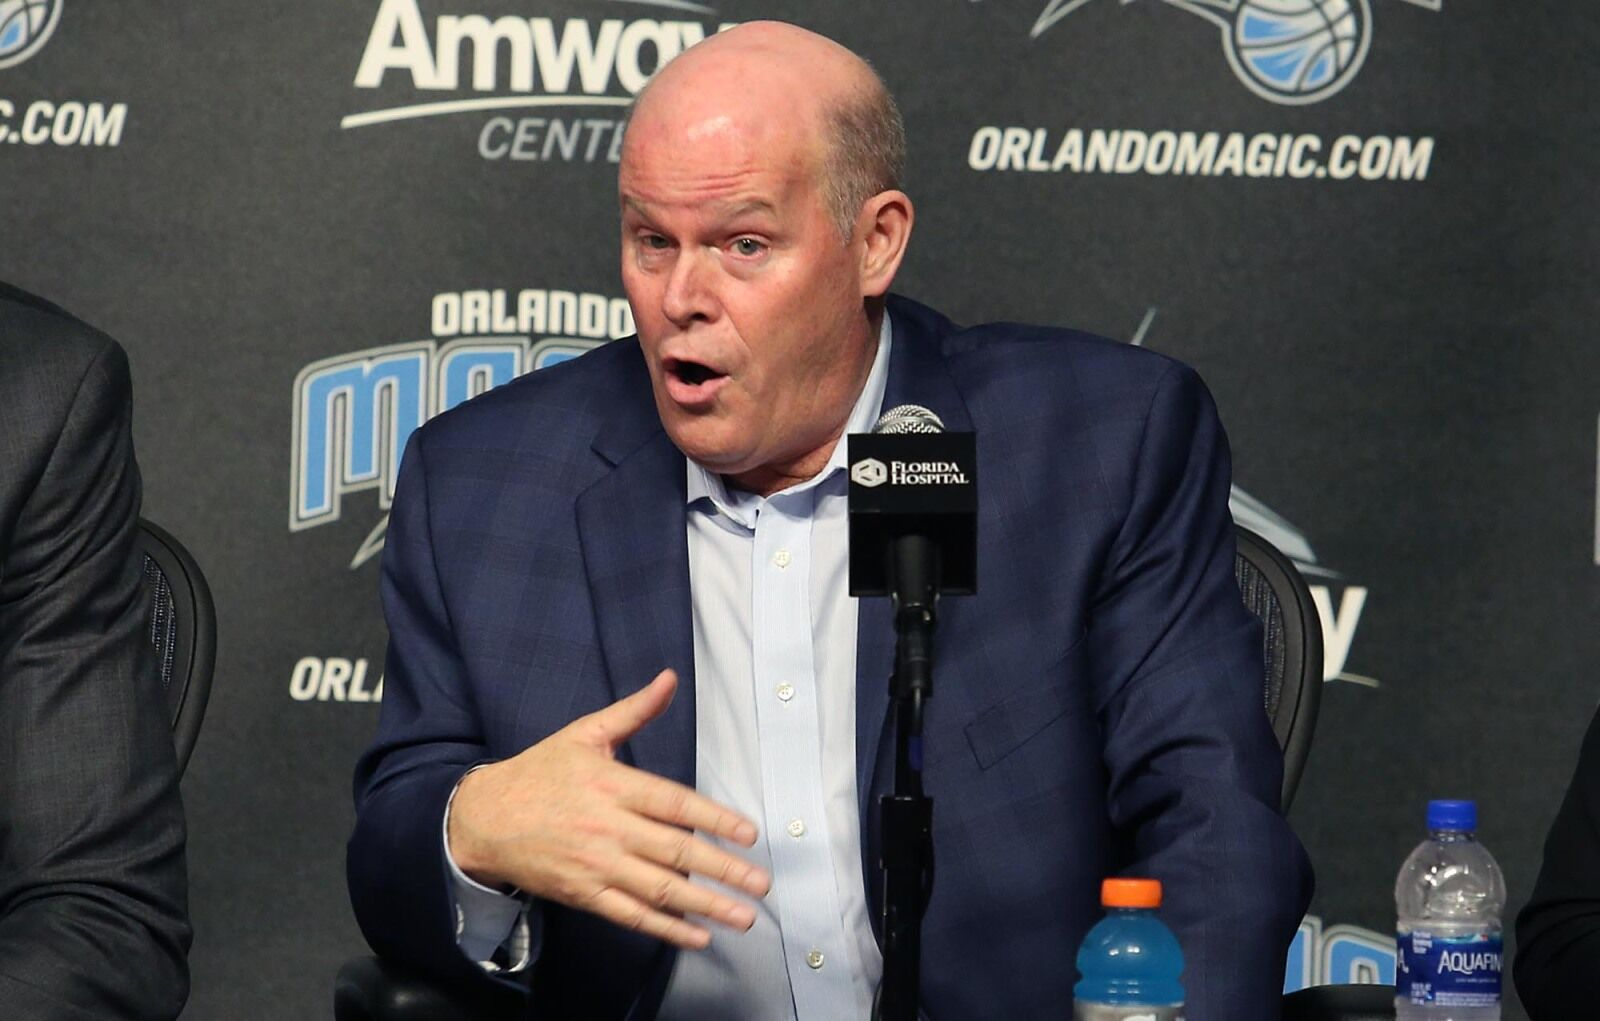 c4d0aba894d Orlando Magic dig into the details as training camp opens